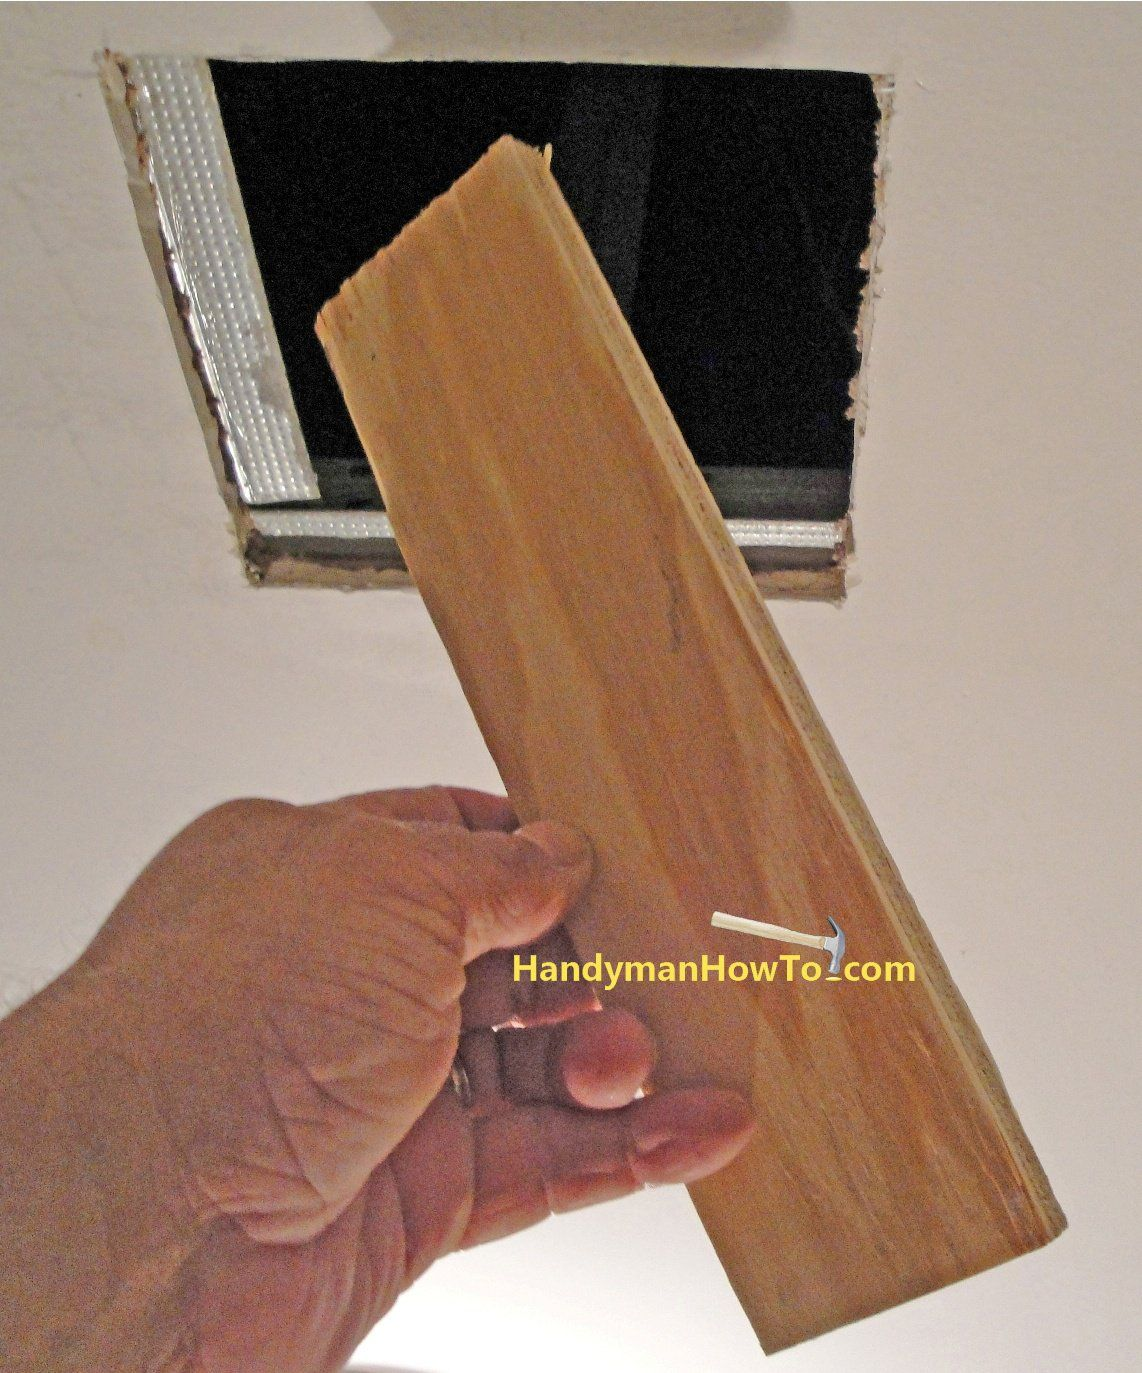 Drywall Ceiling Repair 1 2 Inch Plywood Brace Board Drywall Ceiling Repair Ceilings Drywall